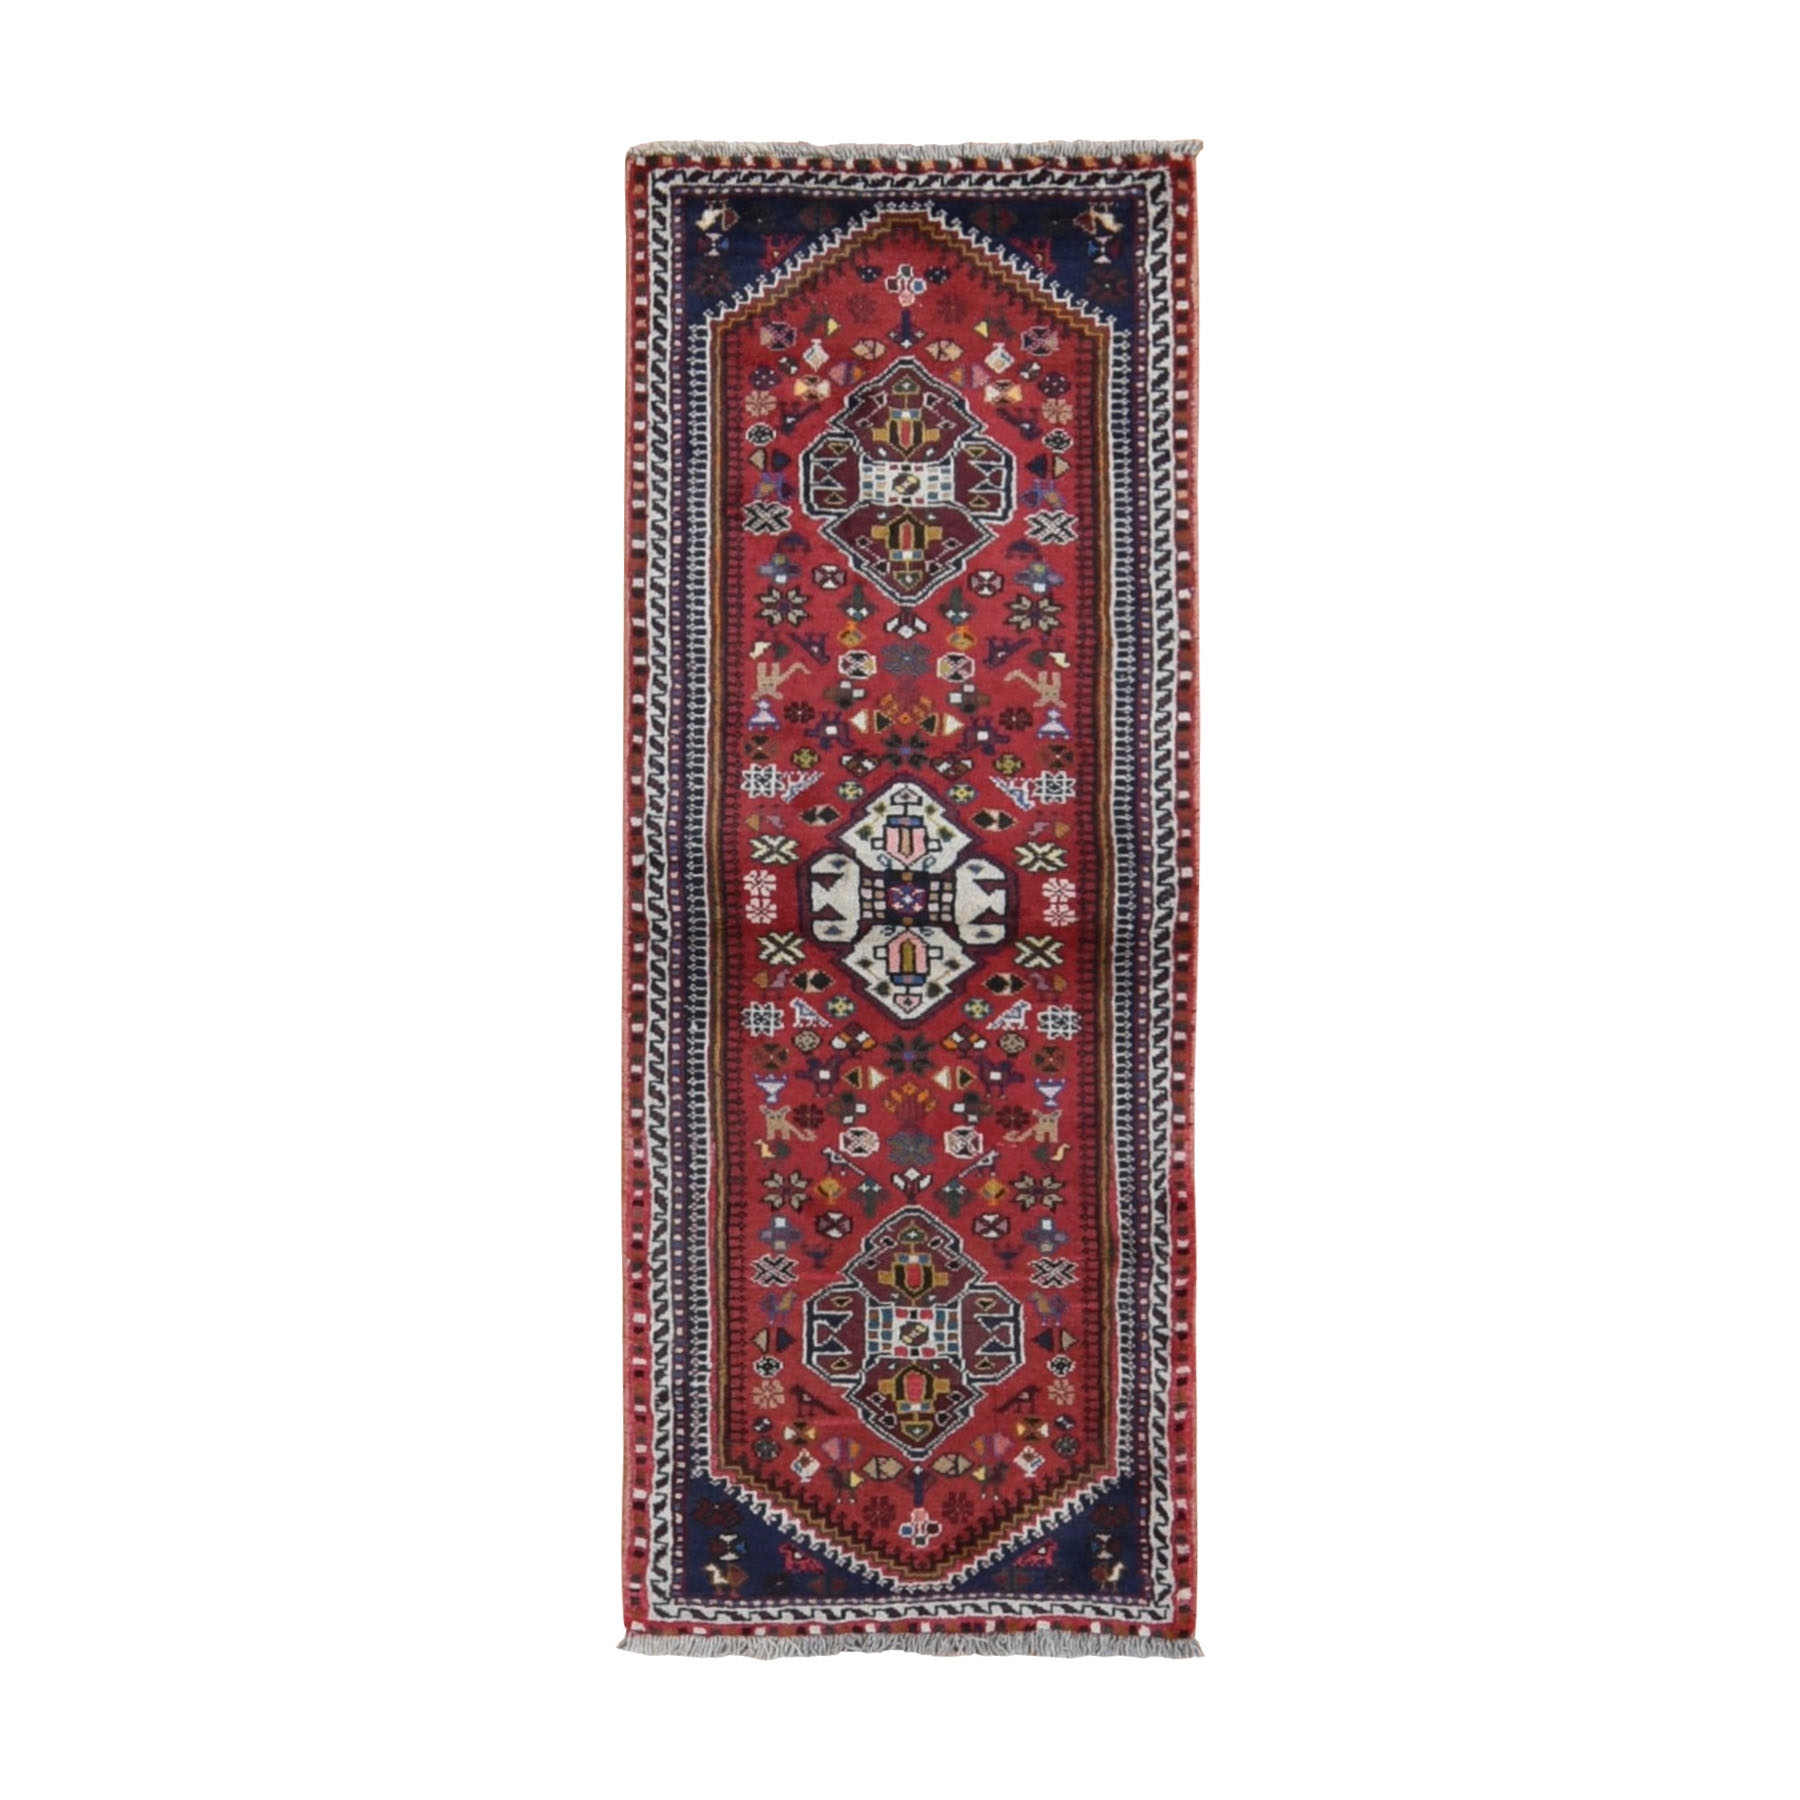 "2'3""x6'3"" Red New Persian Shiraz With Birds Pure Wool Runner Hand Knotted Oriental Rug"